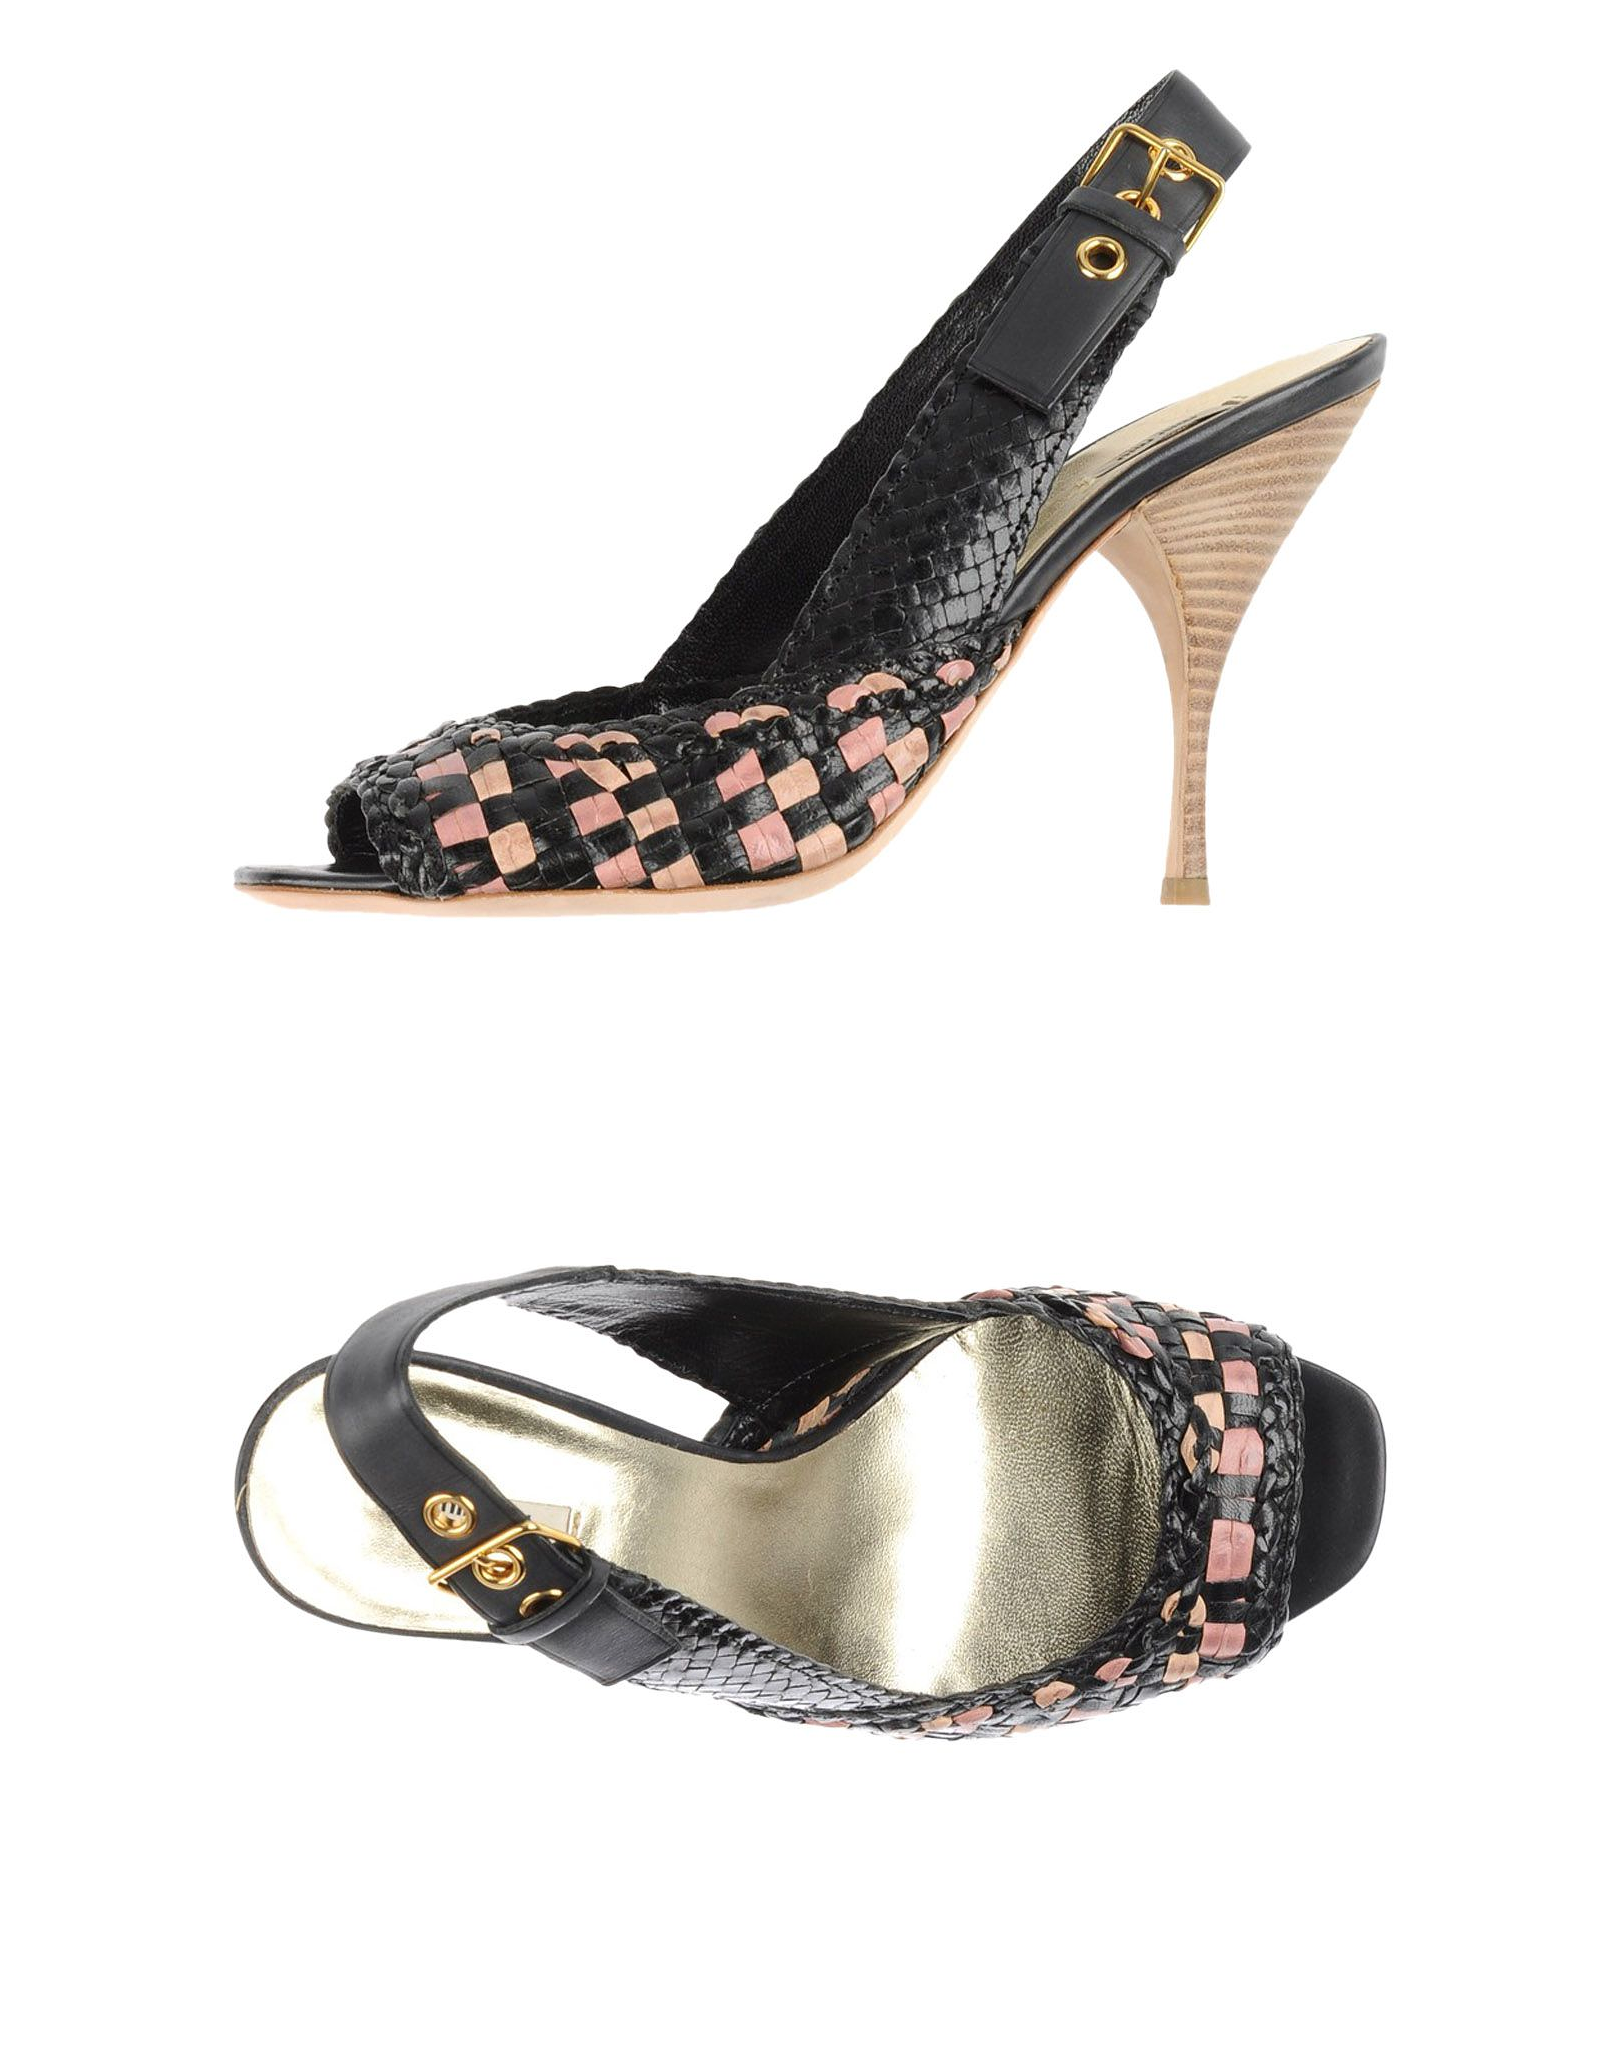 15289e271373 Miu Miu Sandals - on  sale 57% off    Yoox.com  MiuMiu